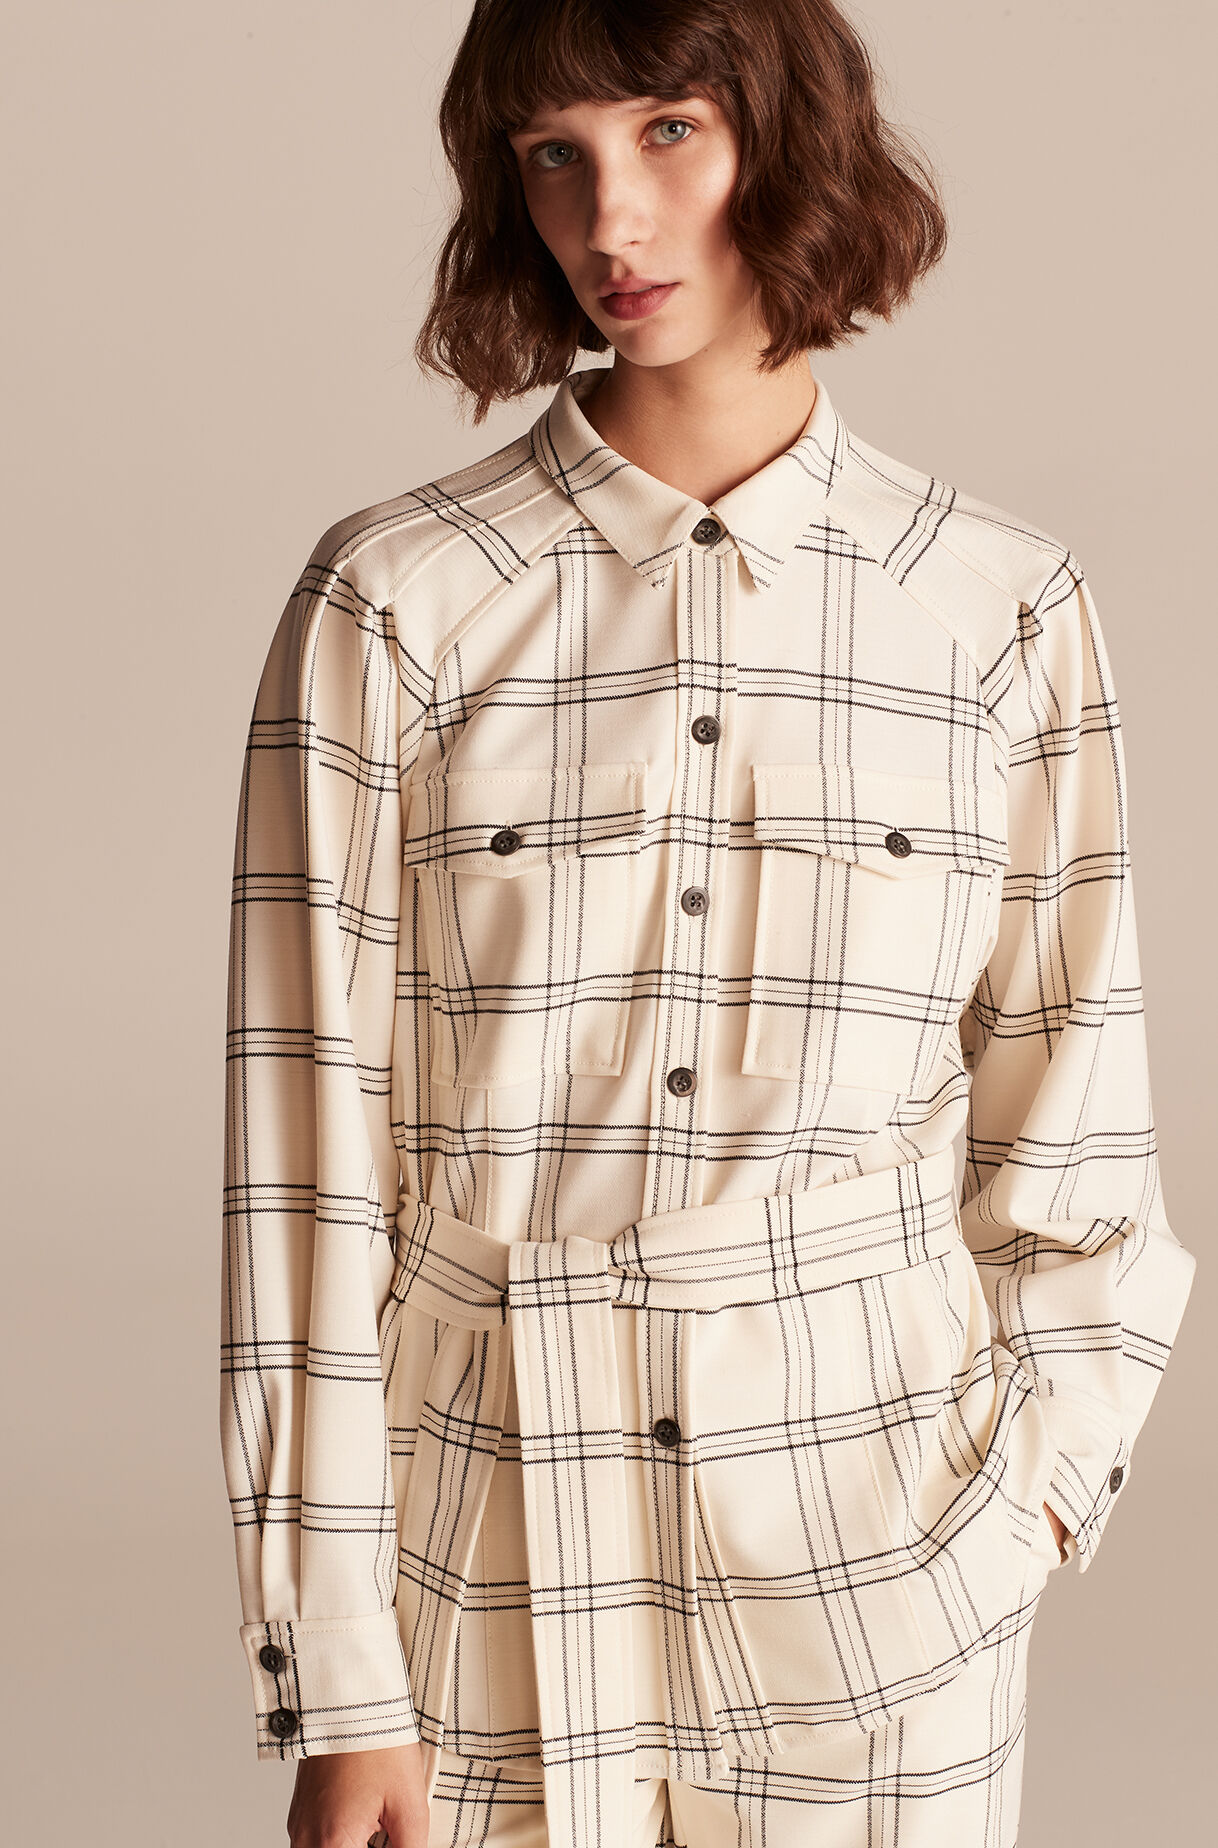 Emery Plaid Jacket, , large